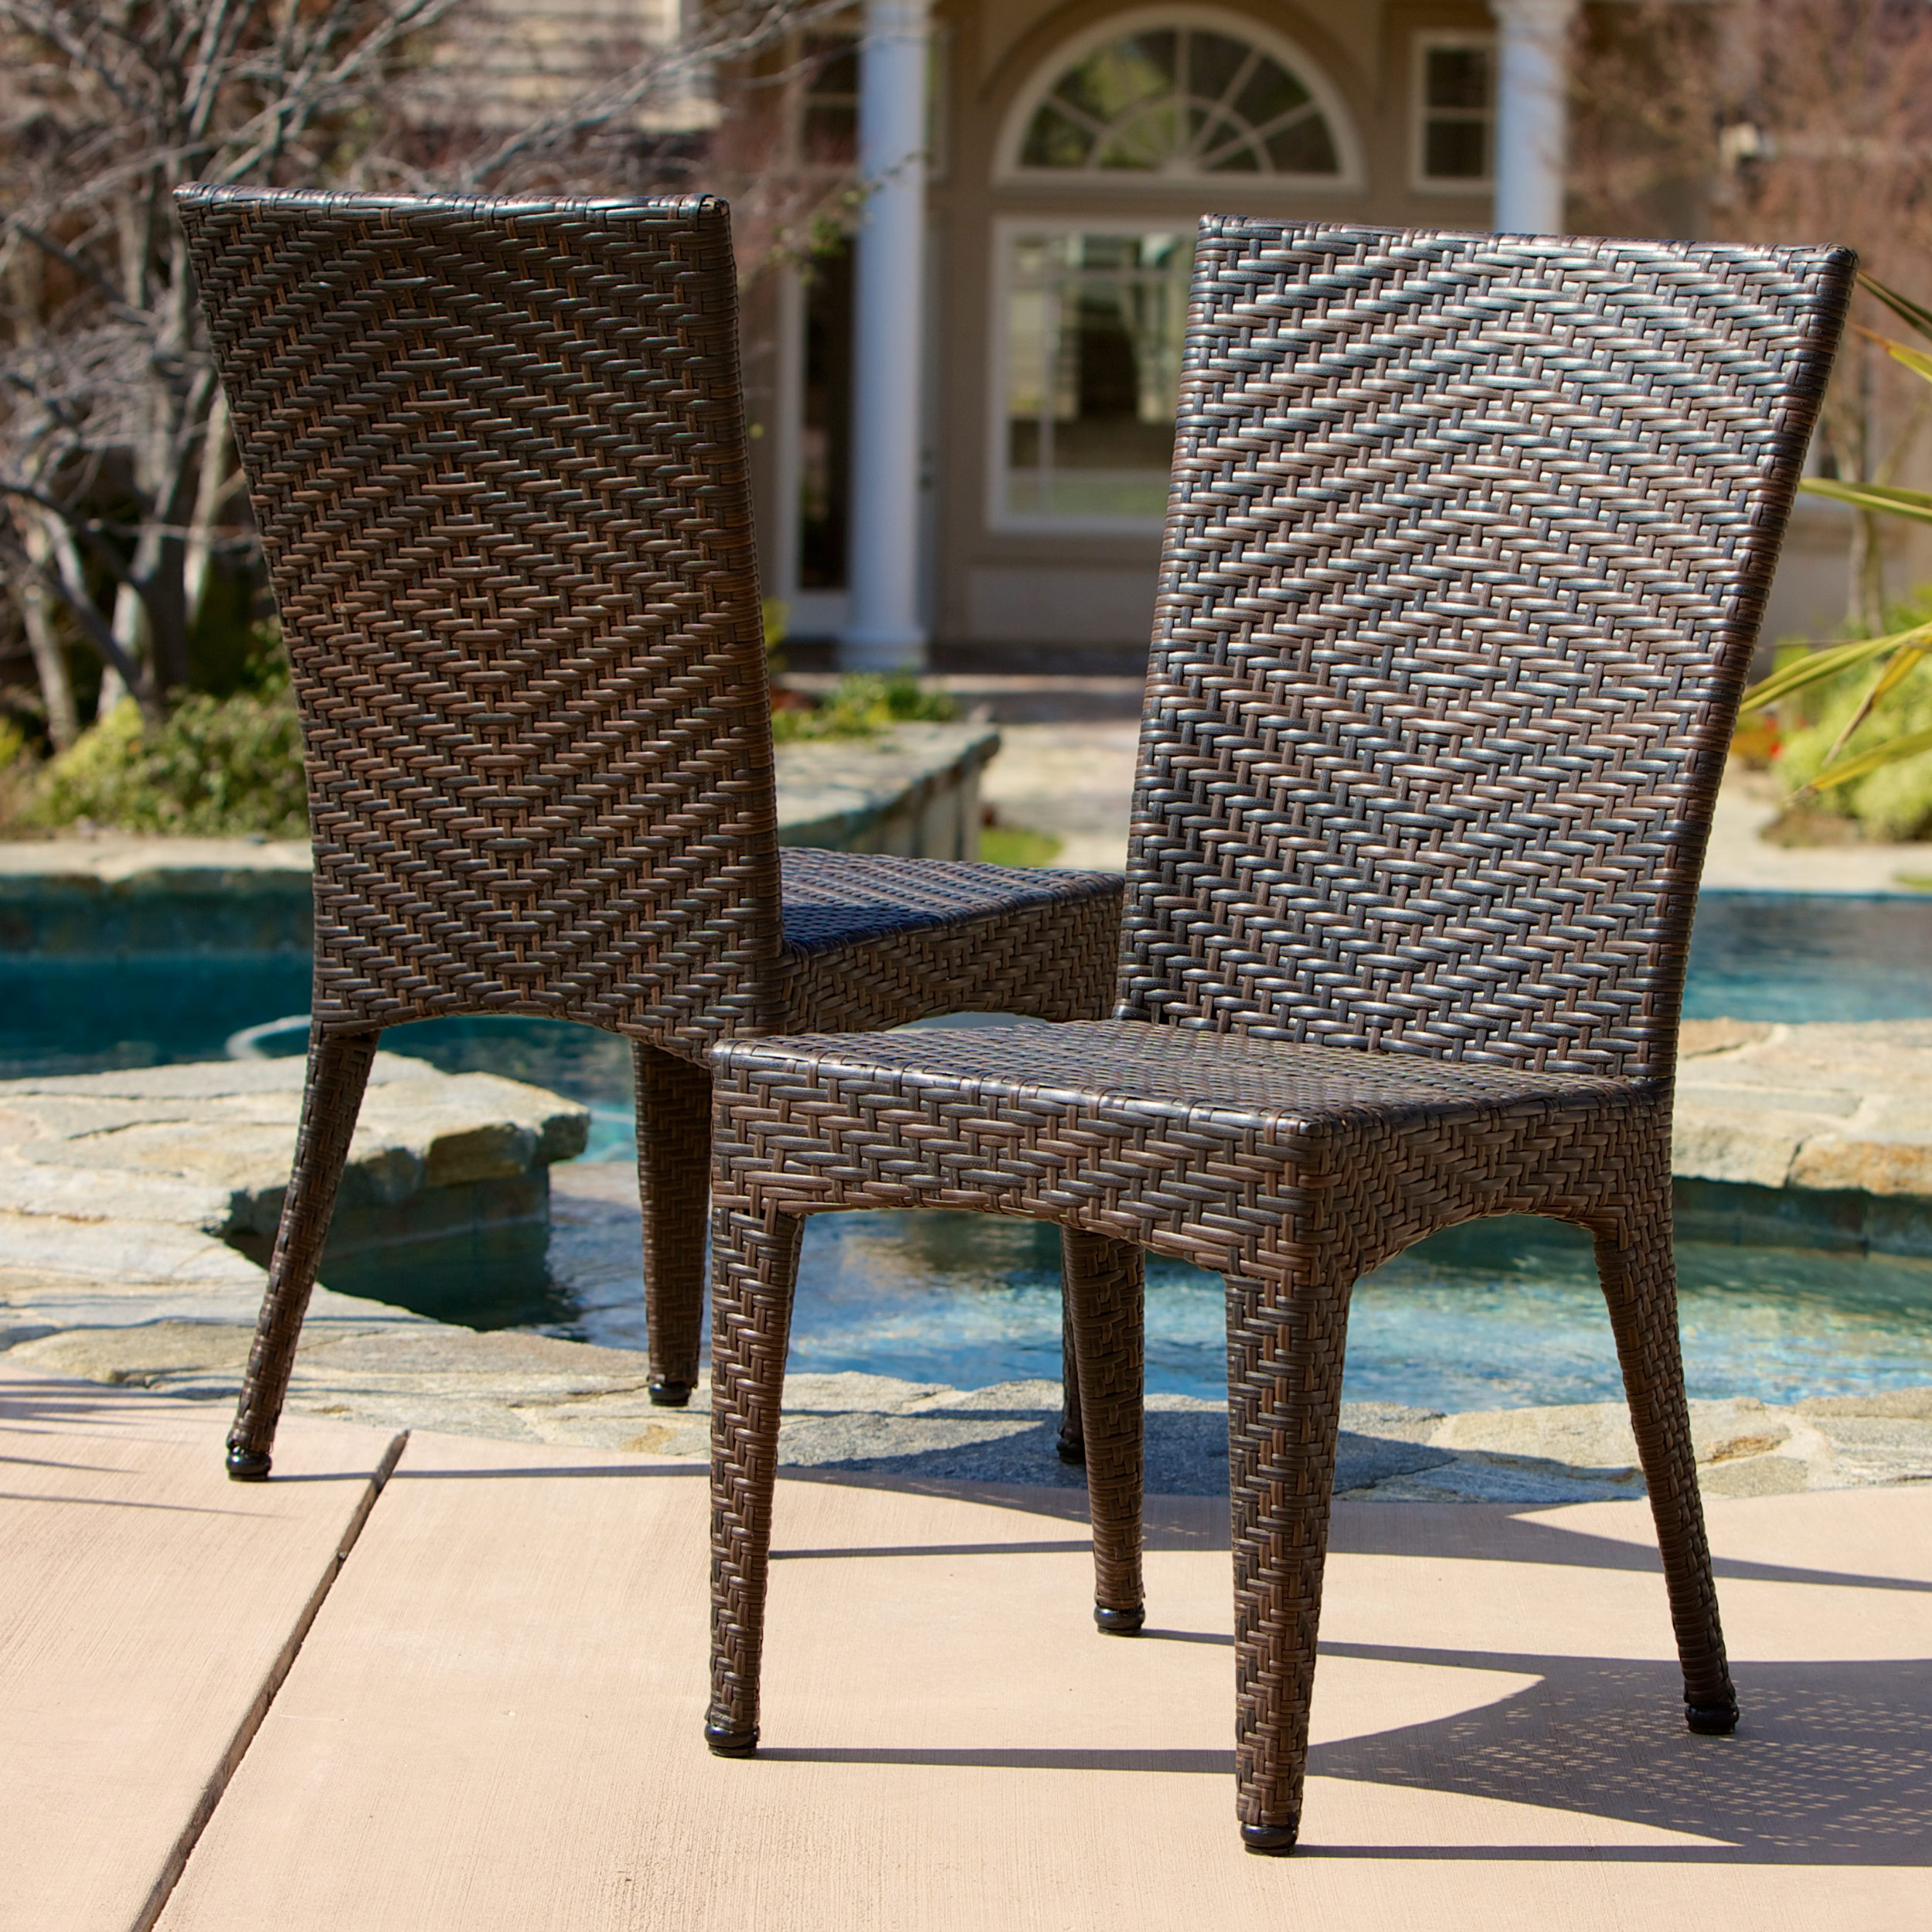 Tuscany Outdoor Wicker Chairs (Set of 2)